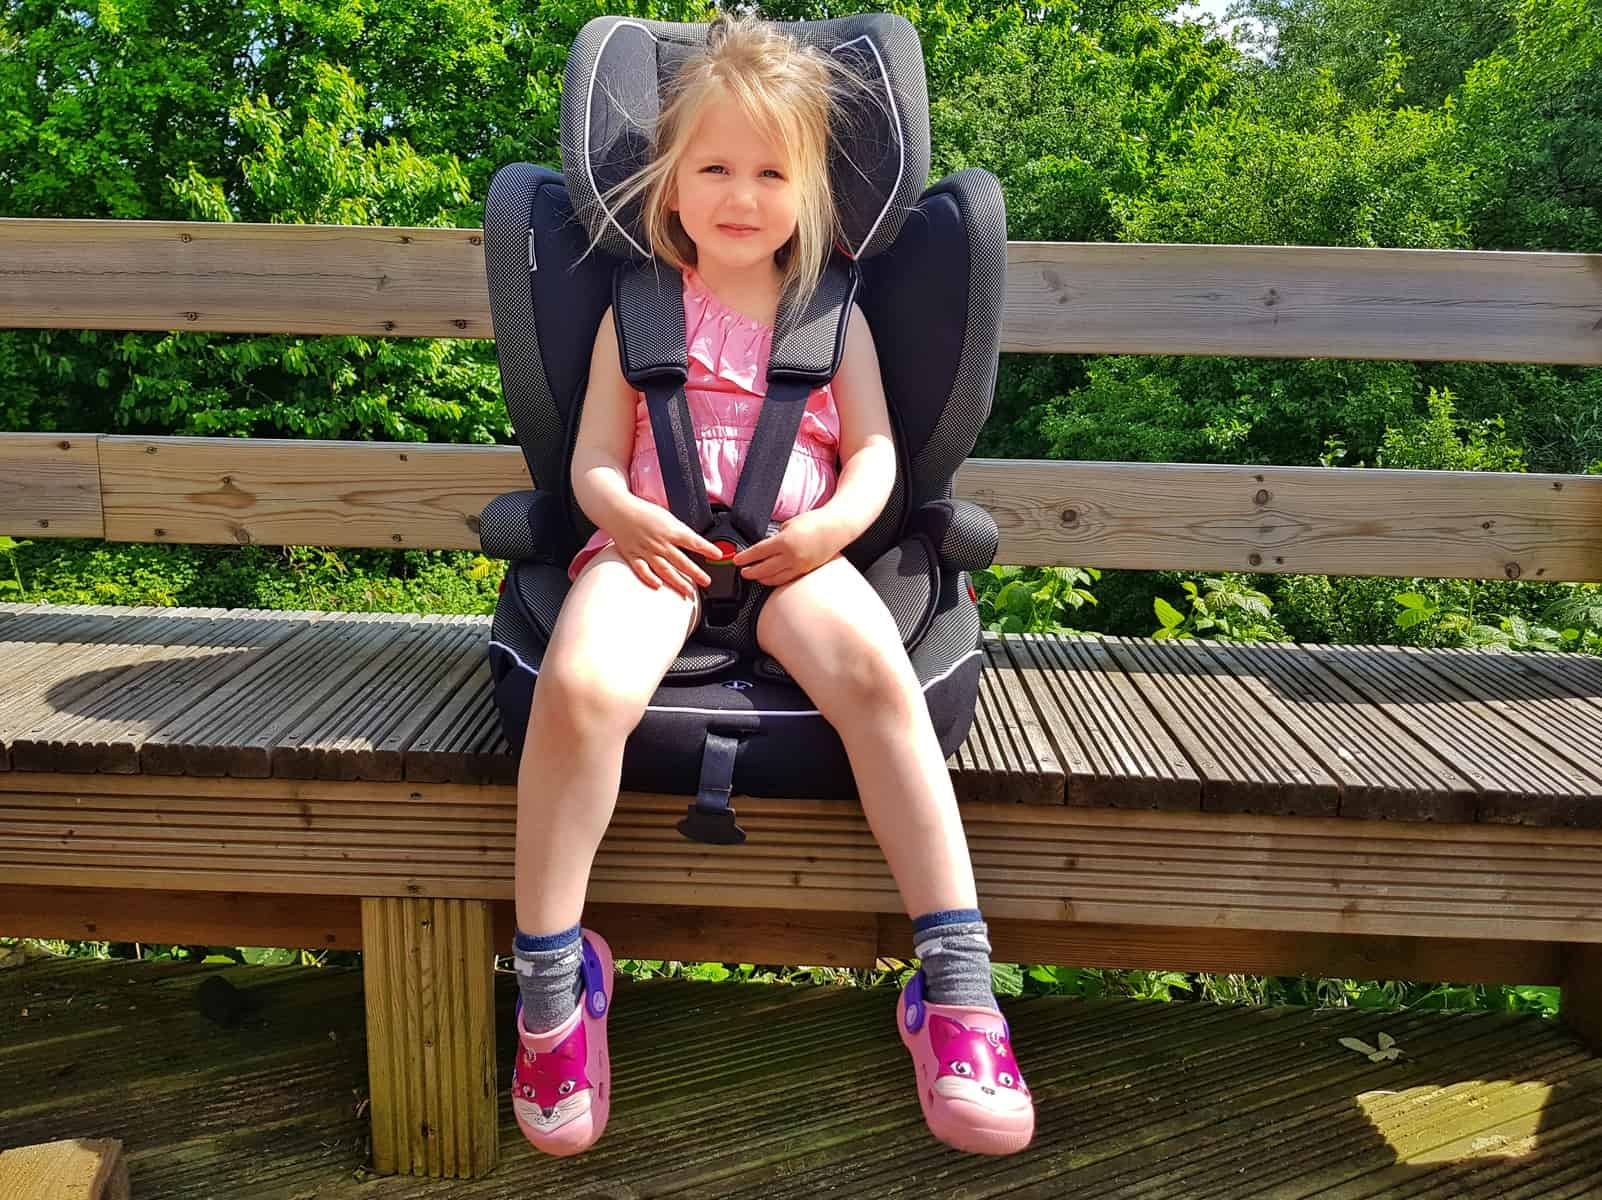 Little girl in pink outfit sat in car seat with five point harness, seat rests on a bench outside